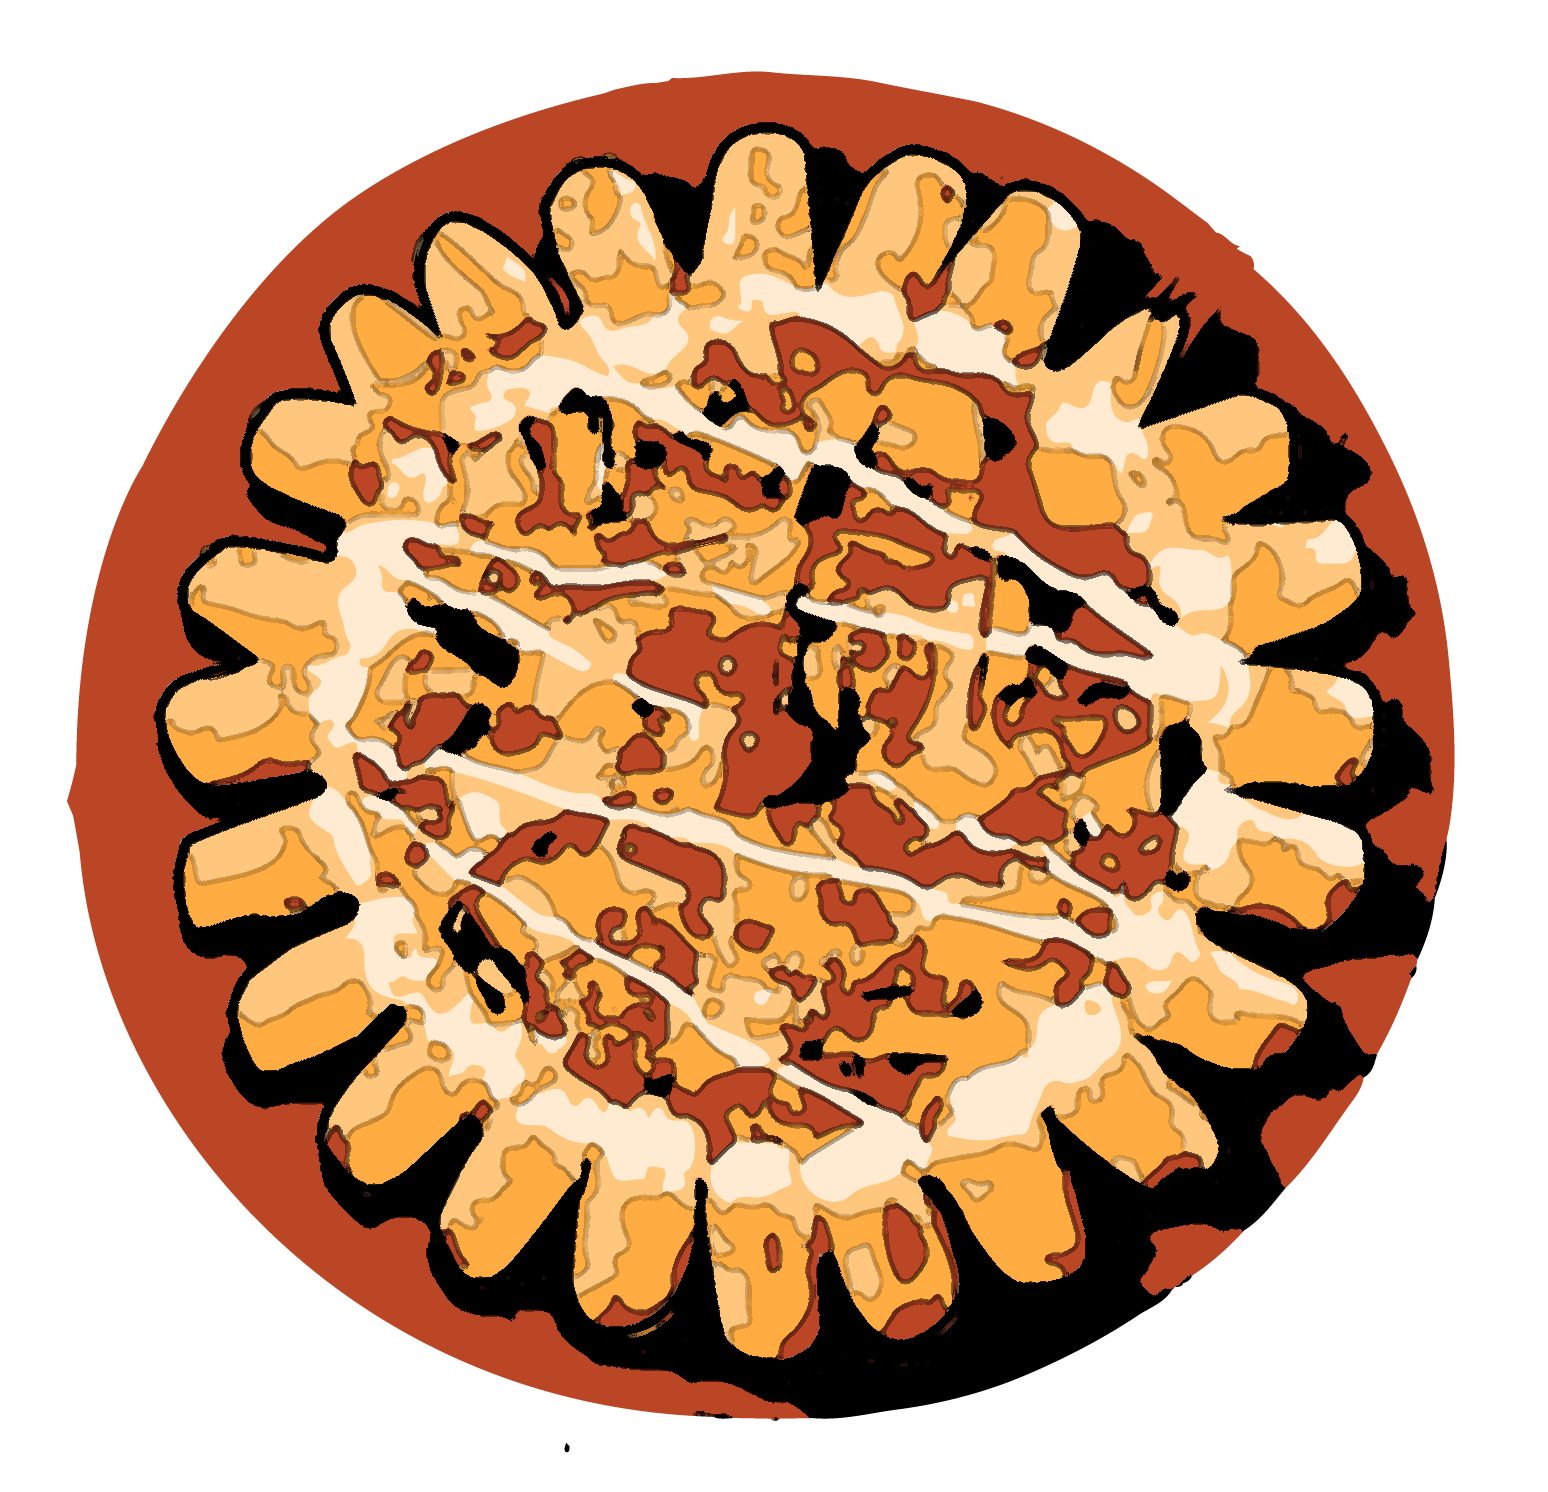 Discontinued fast food items. Clipart heart pizza